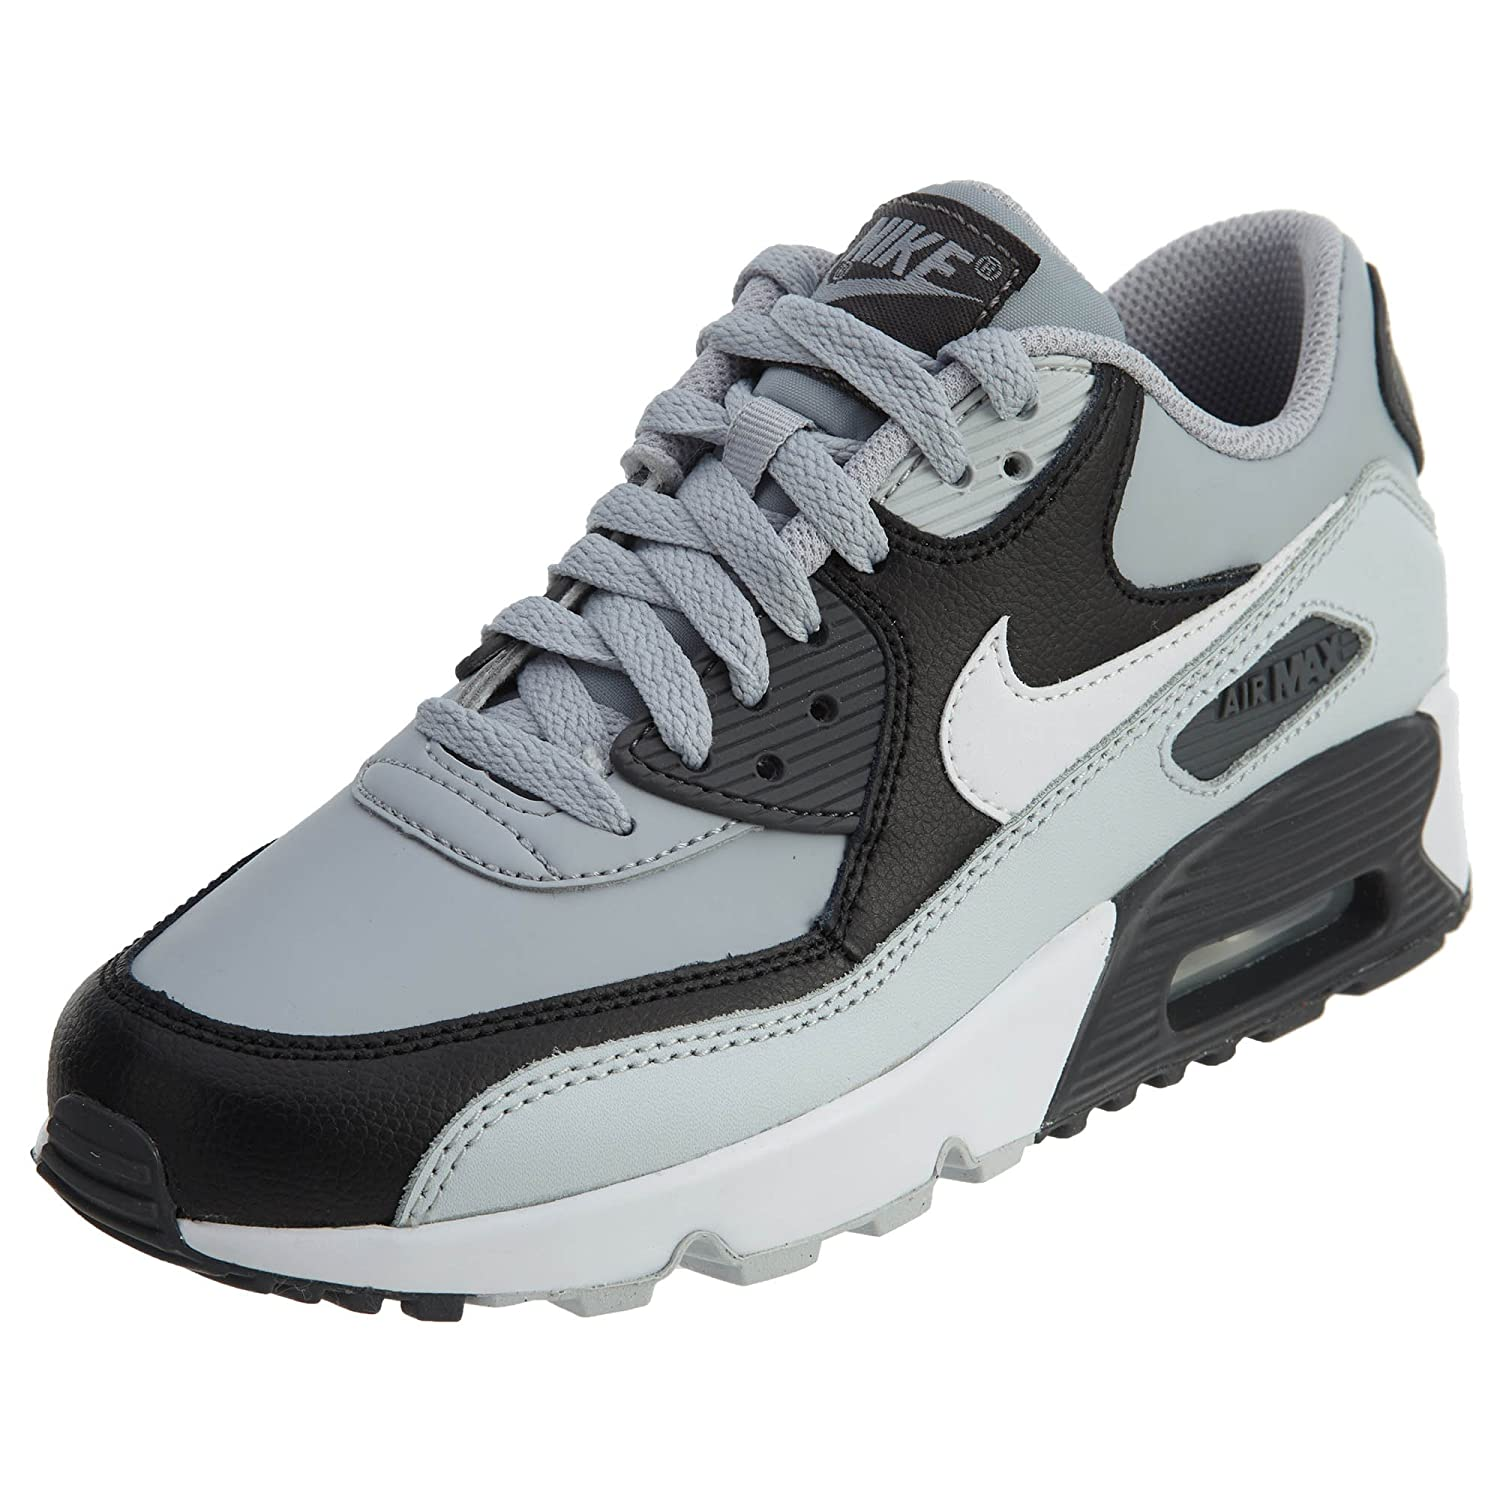 5b129d03f0 Amazon.com | Nike Air Max 90 Leather (Kids) | Running